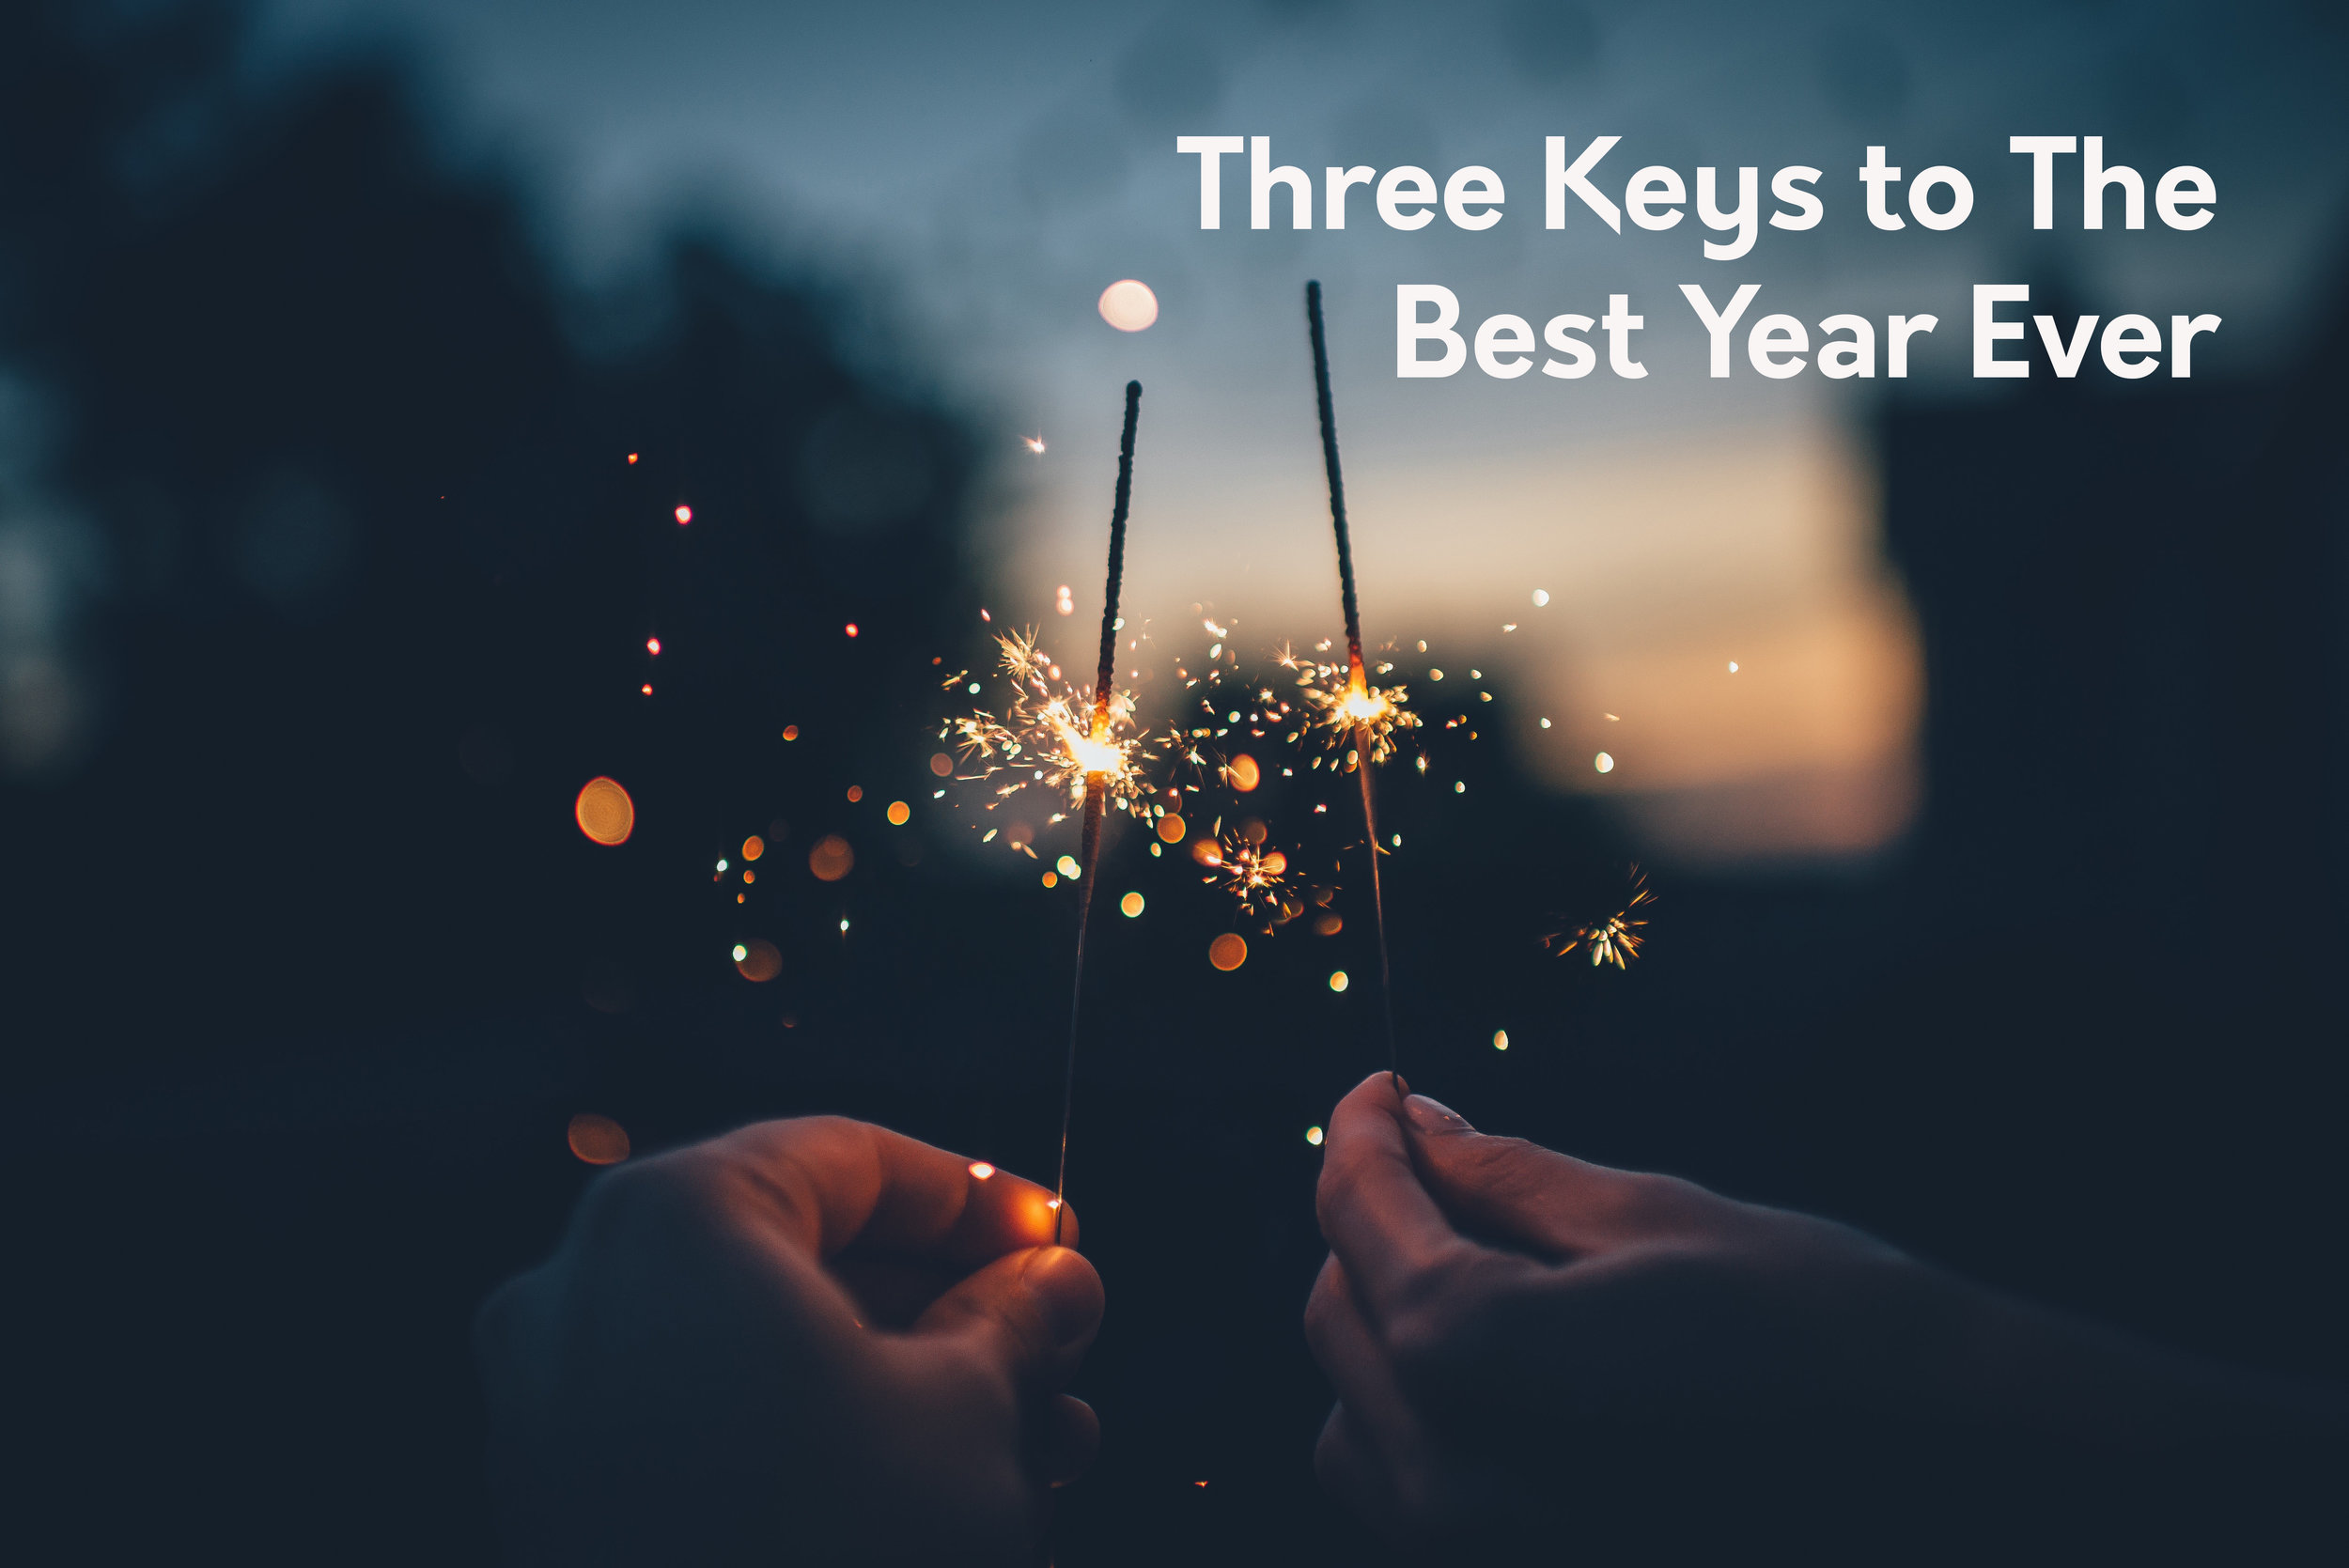 3 Keys to the Best Year Ever.jpg